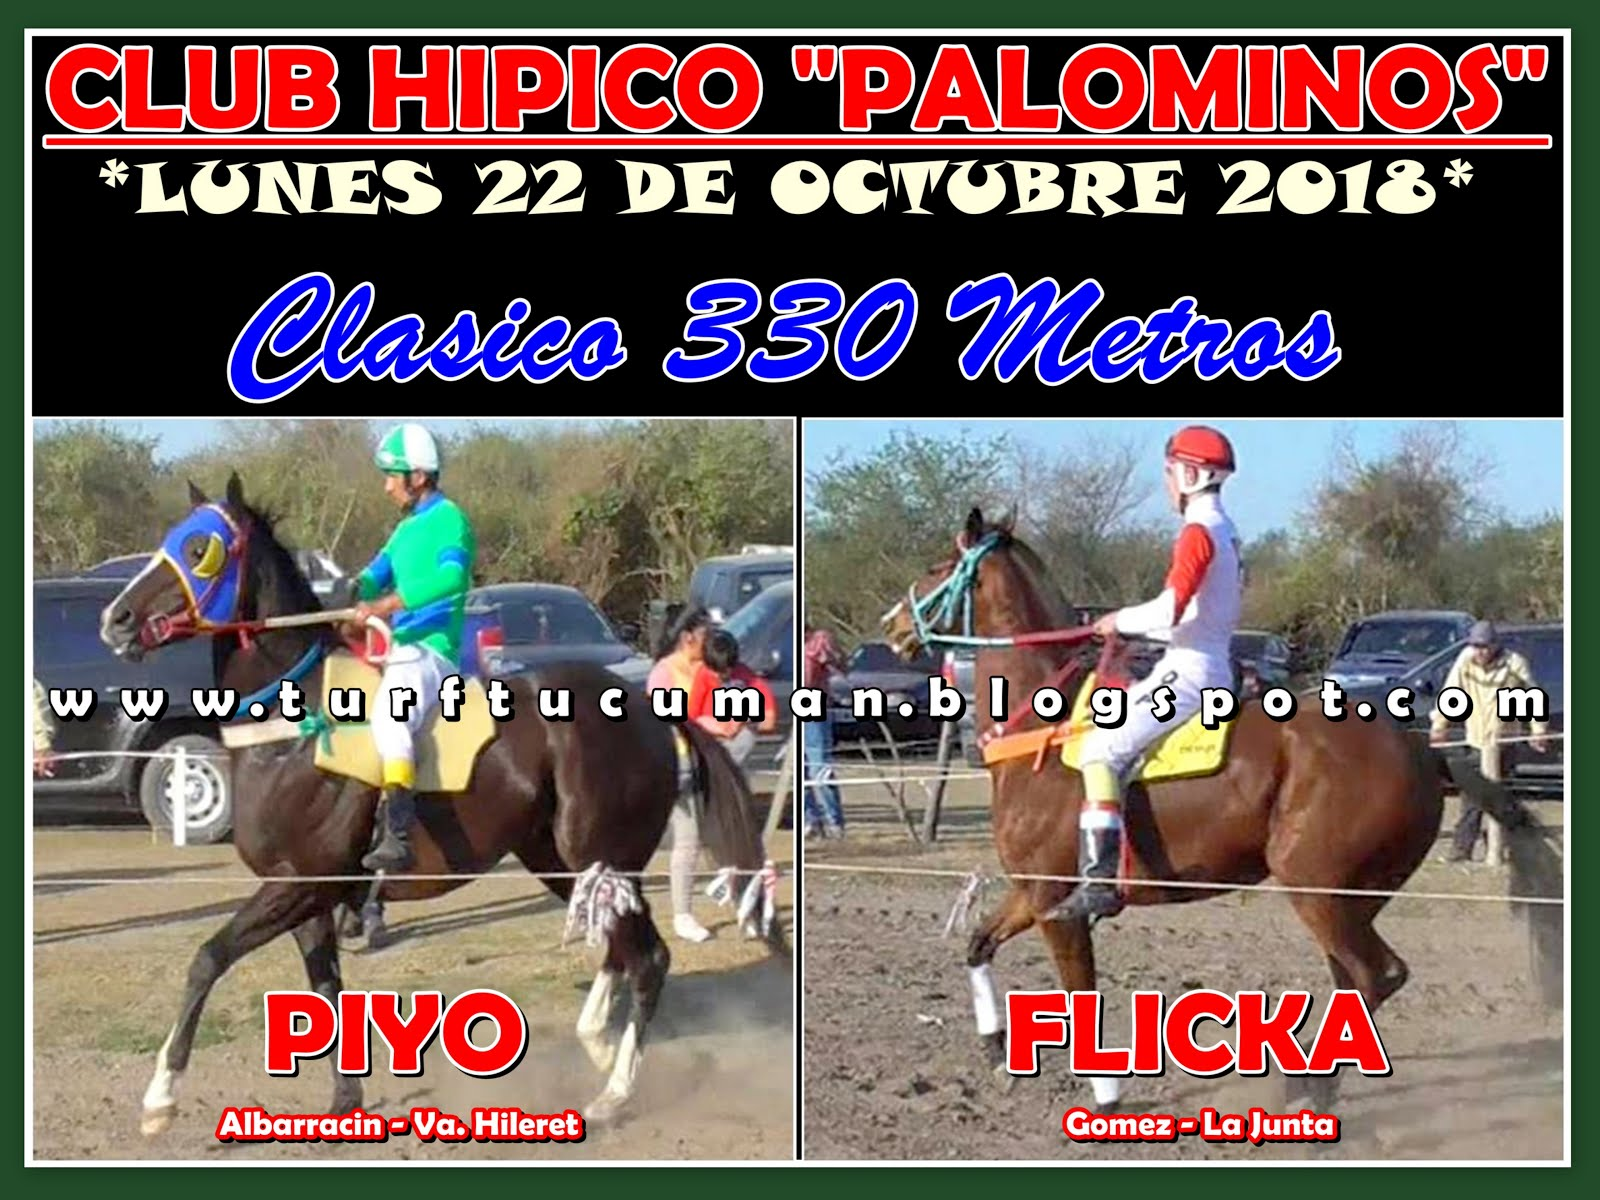 PIYO VS FLICKA